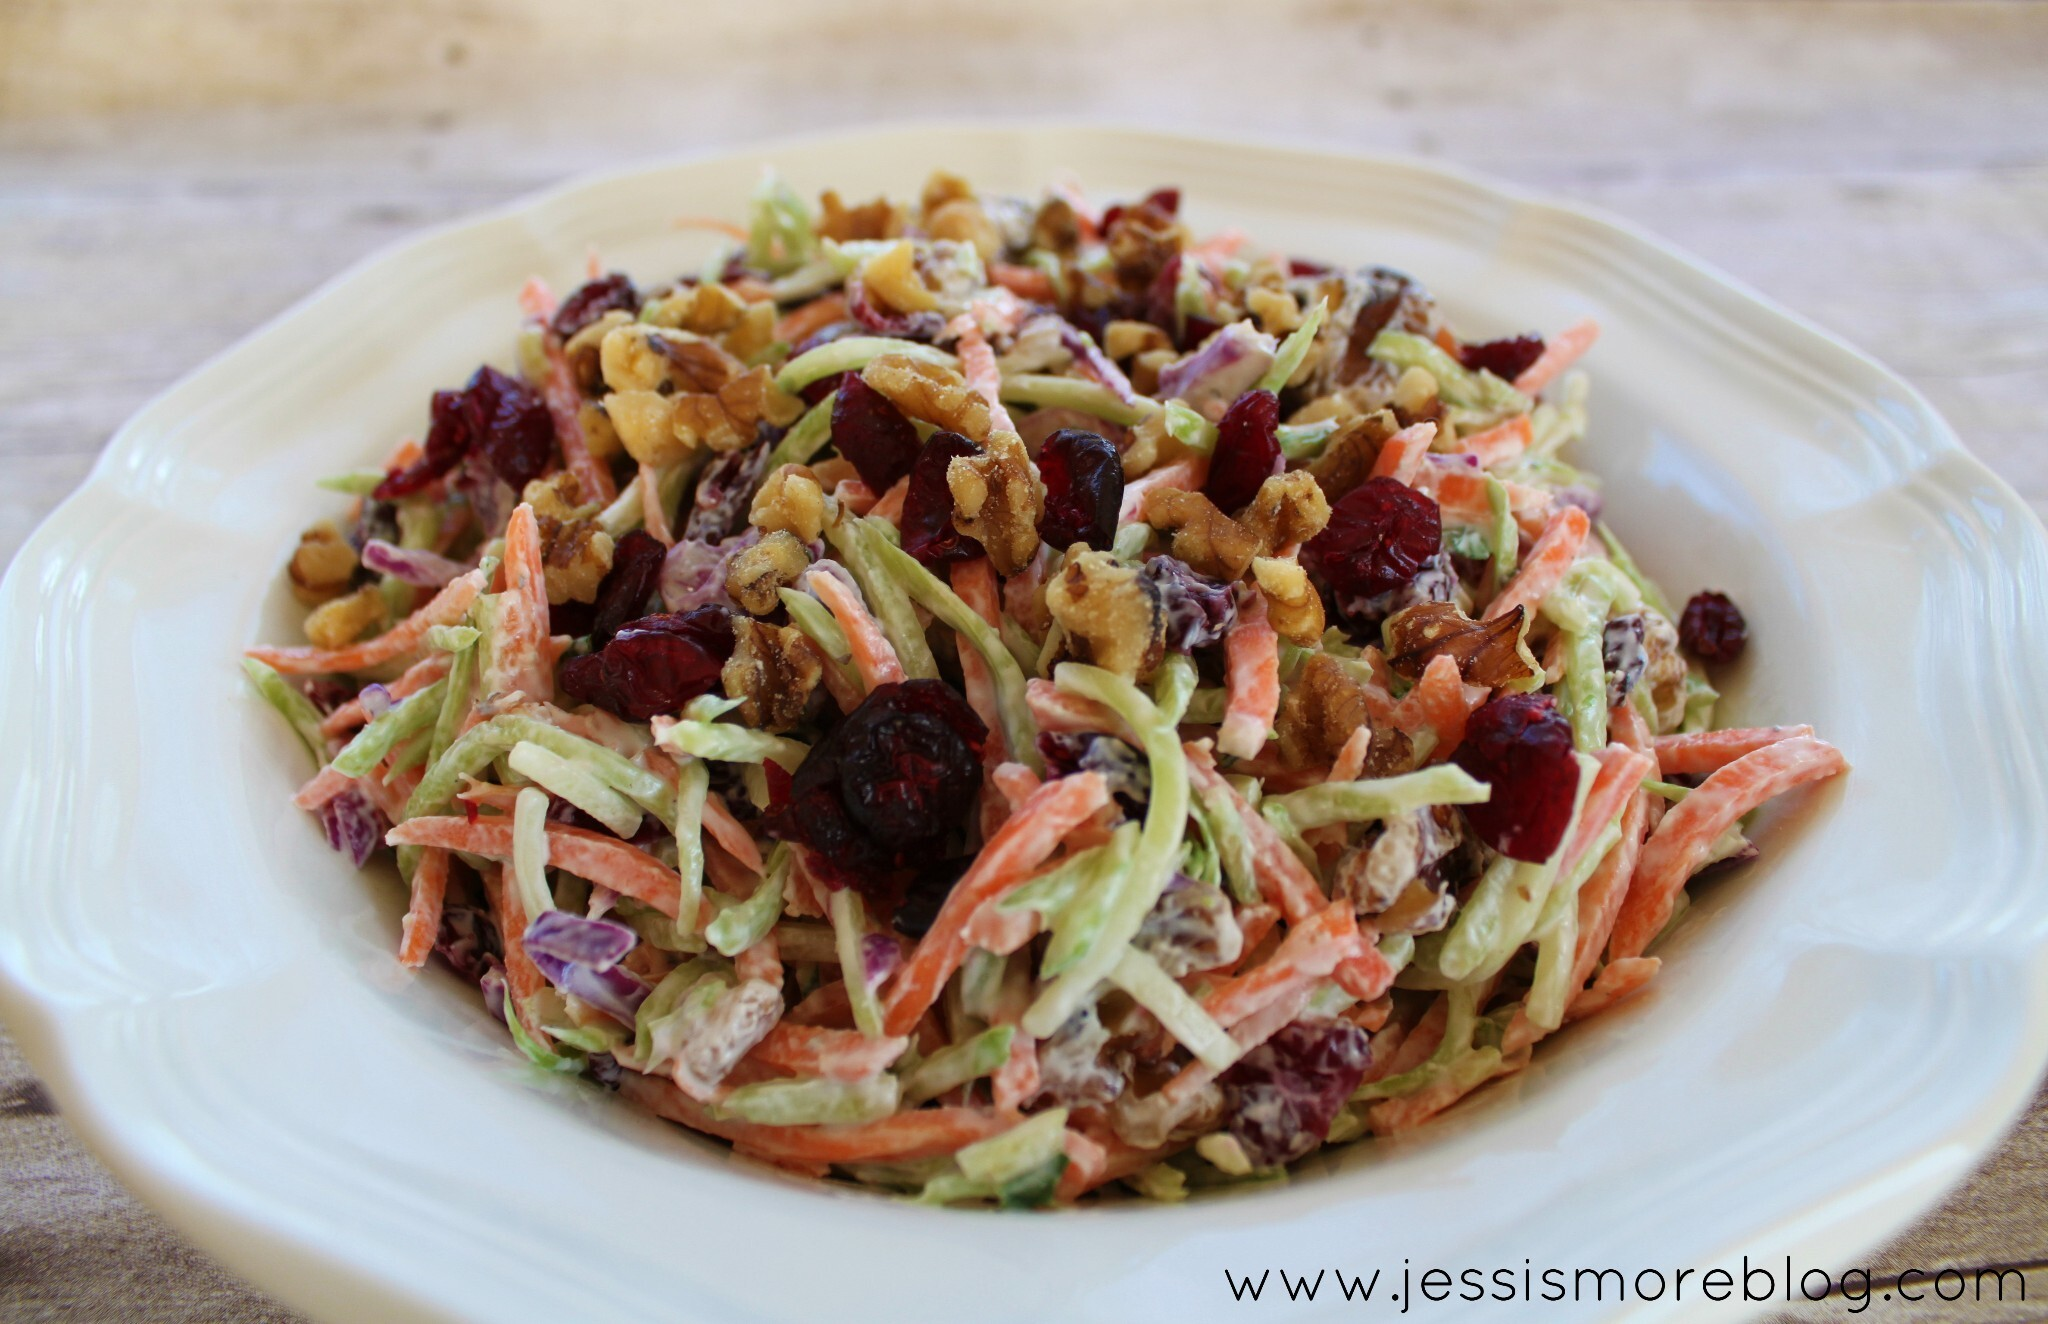 SPD: Broccoli Slaw With Yogurt Dressing